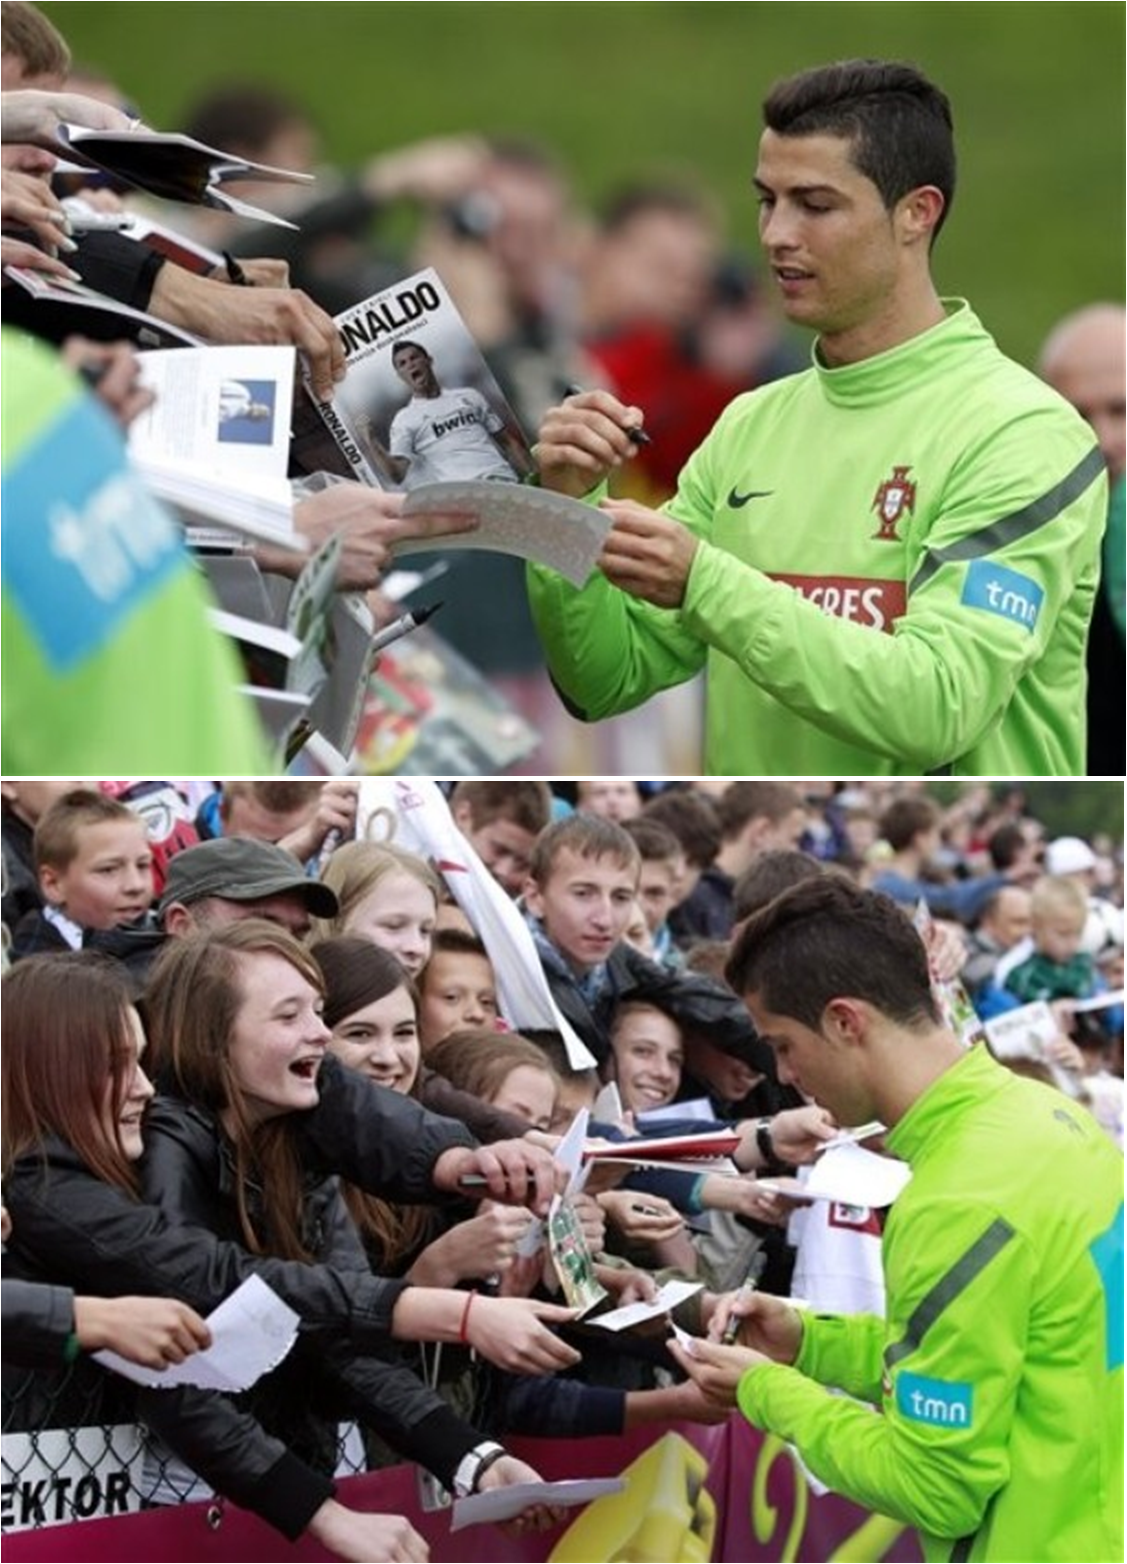 Making the fans happy. Training in Opalenica 05.06.2012(via Photo from AP Photo)